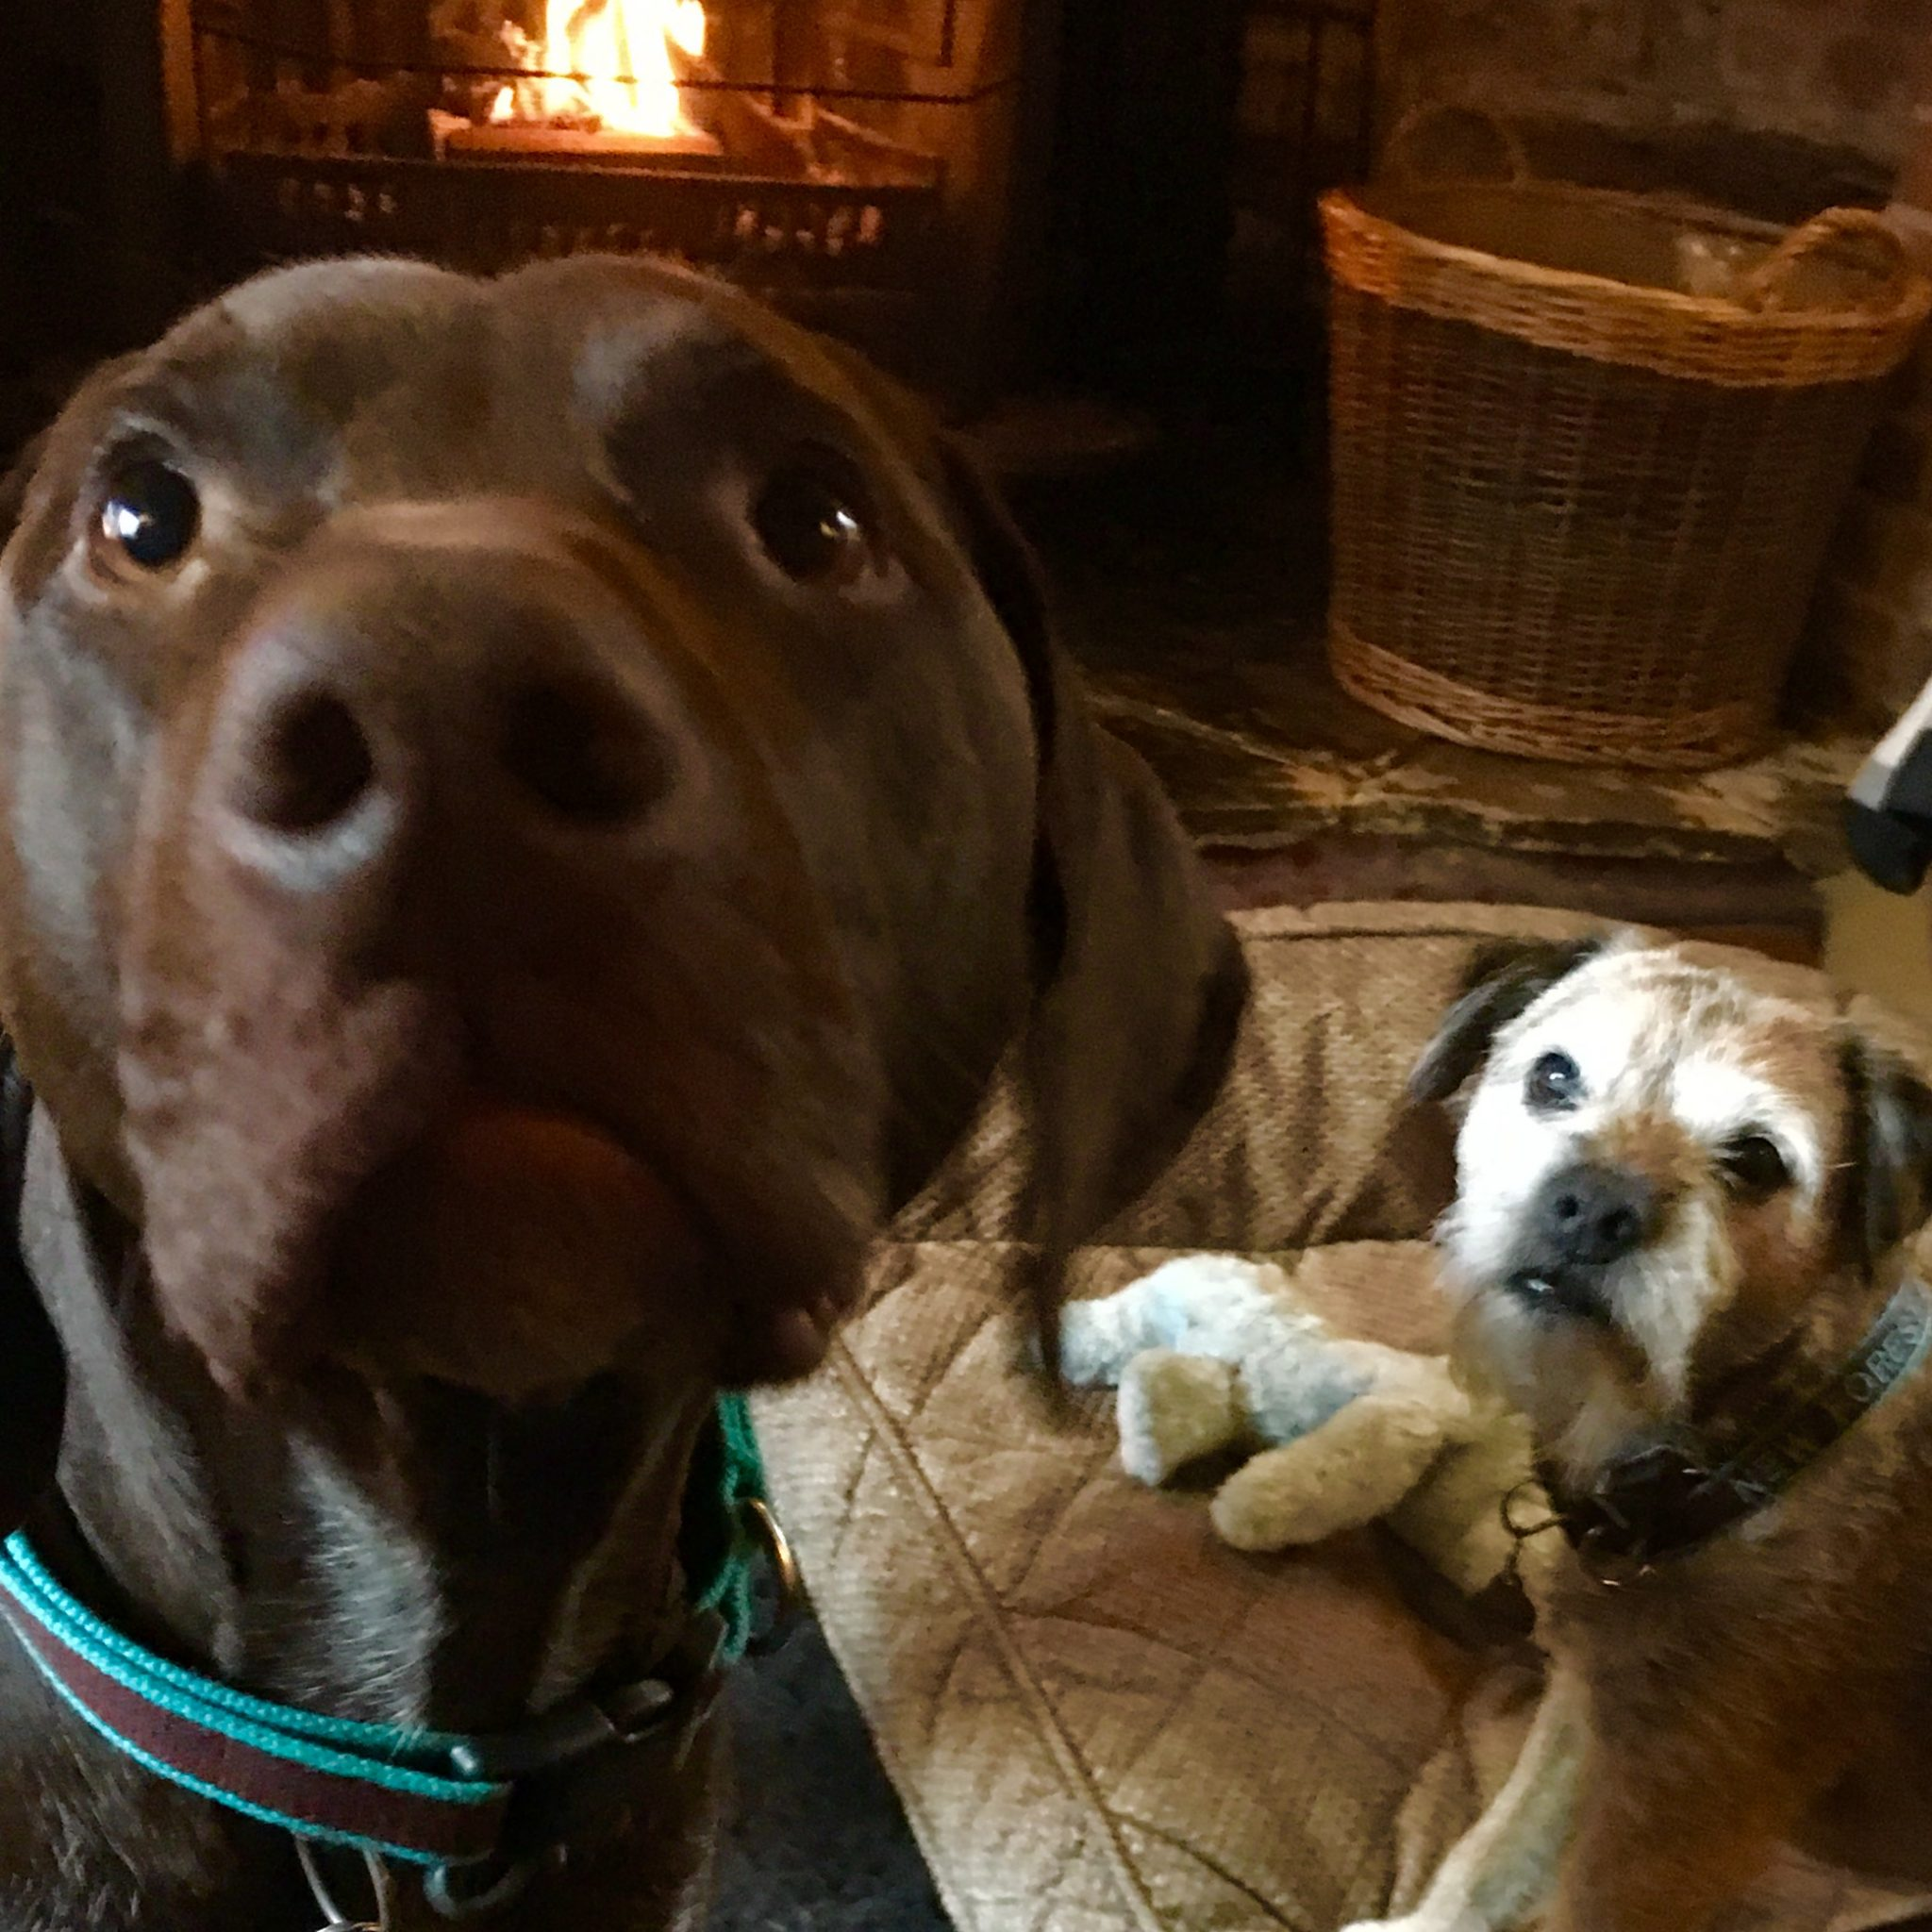 Jan from Devon checked in her Border Terrier and German Short Haired Pointer and said The New Forest Dog Hotel was a comfortable and caring home from home